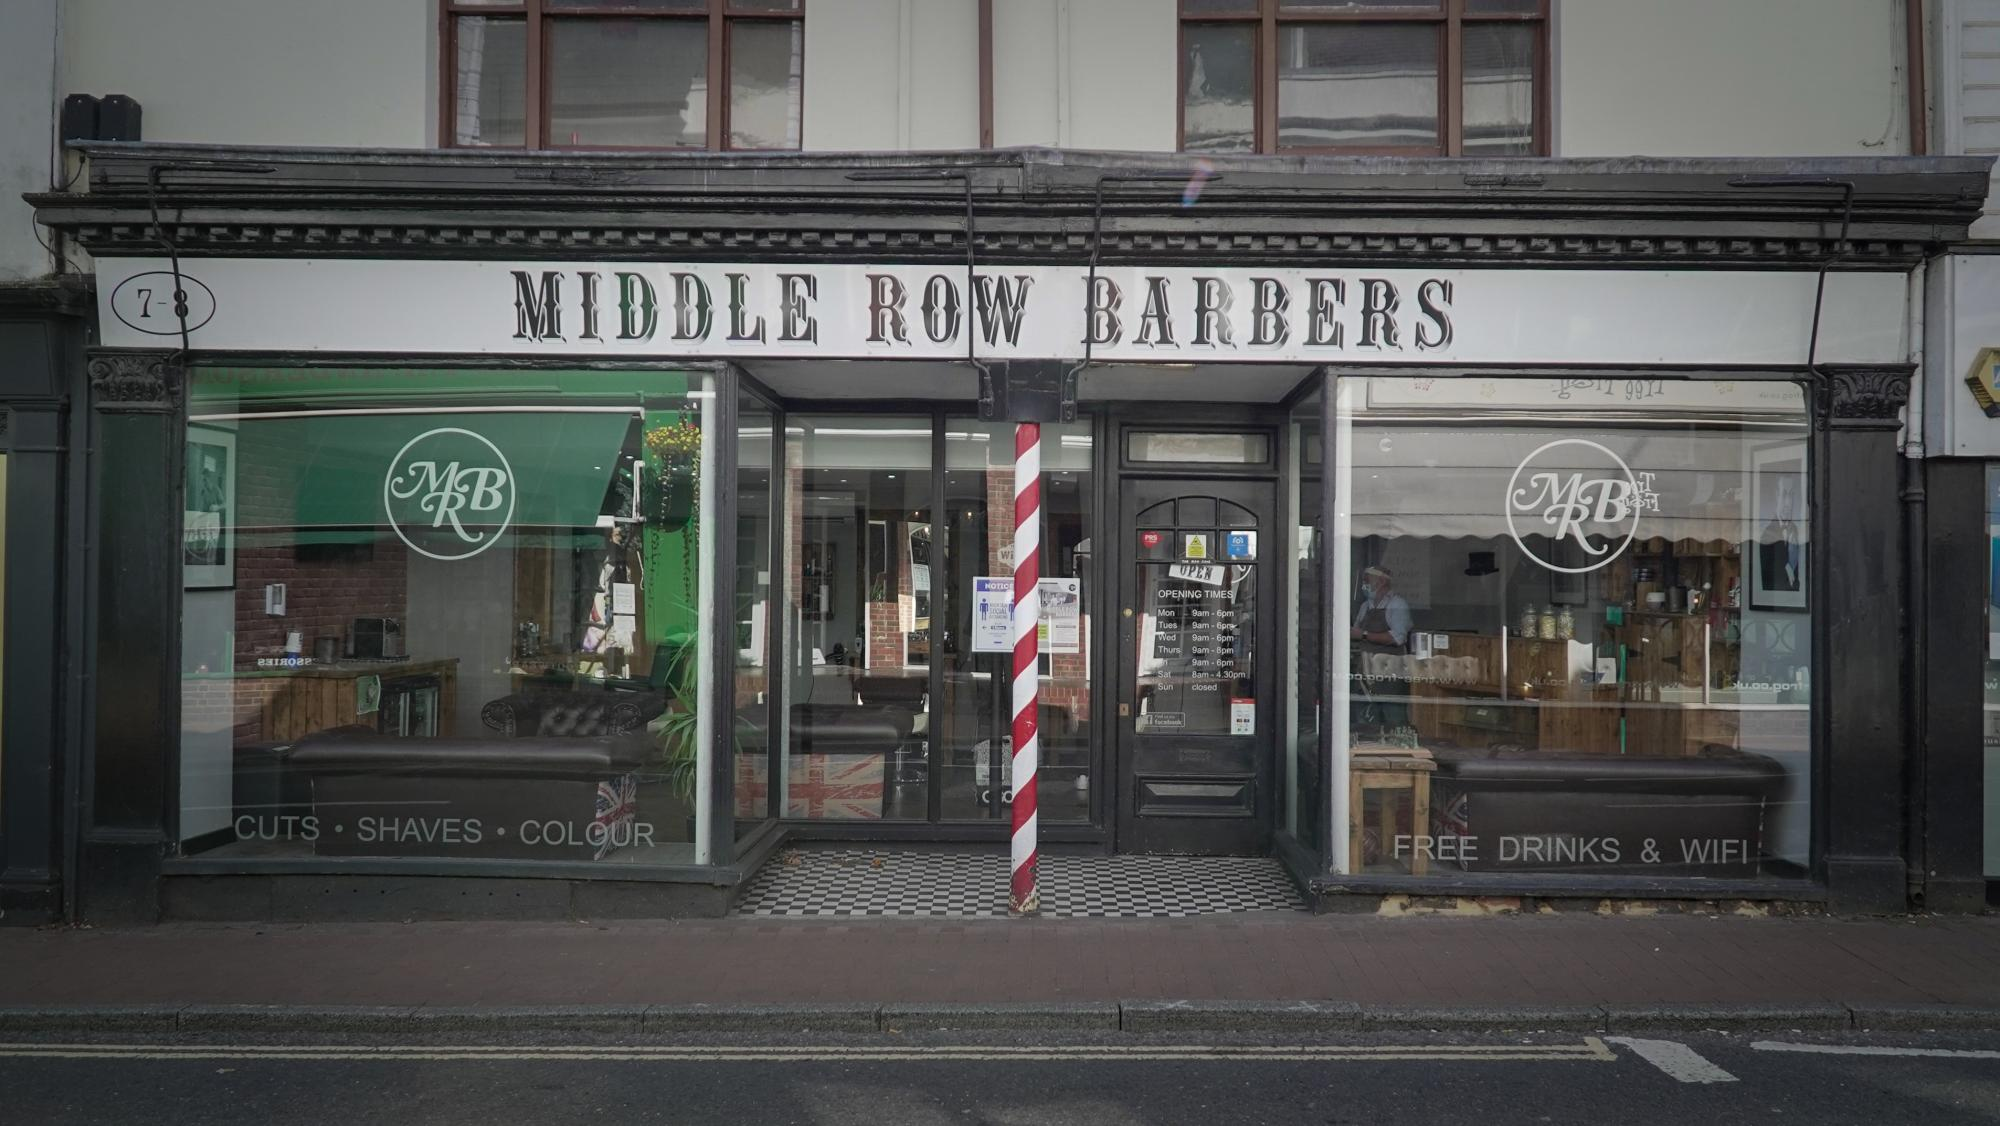 Middle Row Barber exterior